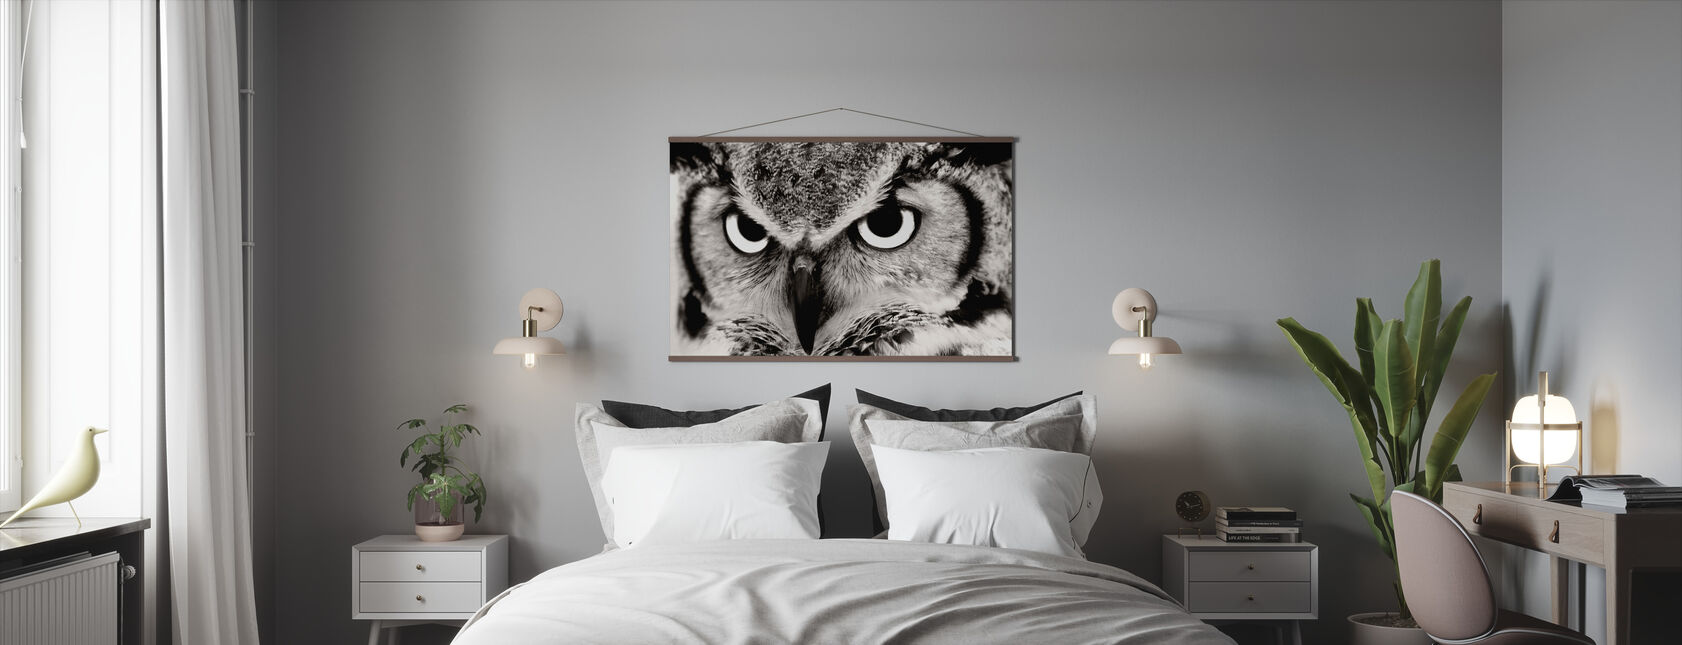 Great Horned Owl - Poster - Bedroom